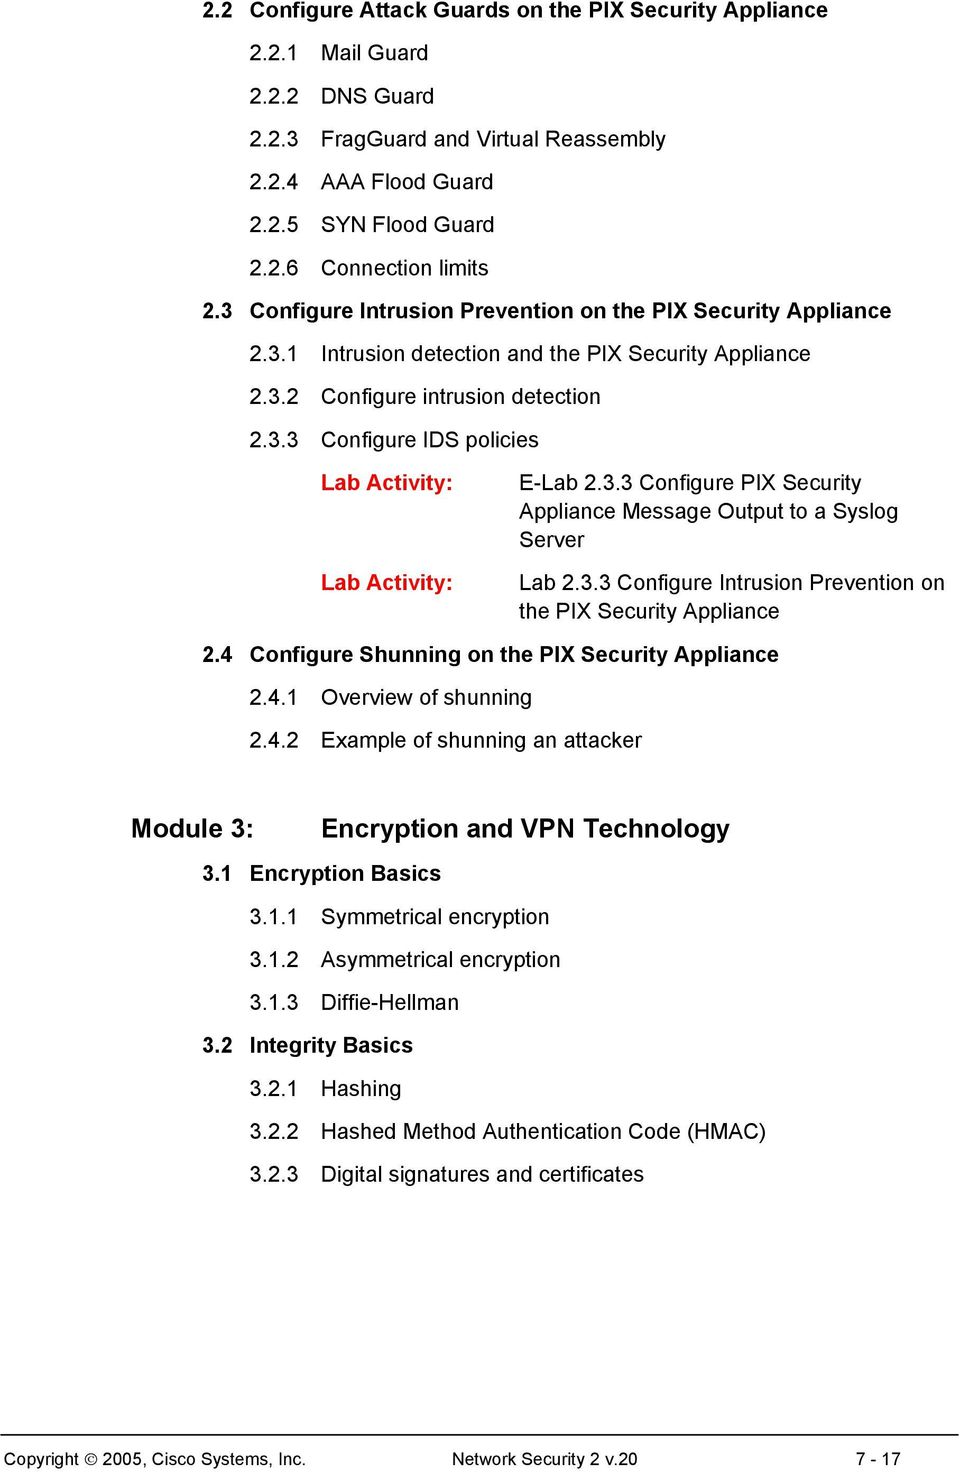 3.3 Configure Intrusion Prevention on the PIX Security Appliance 2.4 Configure Shunning on the PIX Security Appliance 2.4.1 Overview of shunning 2.4.2 Example of shunning an attacker Module 3: Encryption and VPN Technology 3.